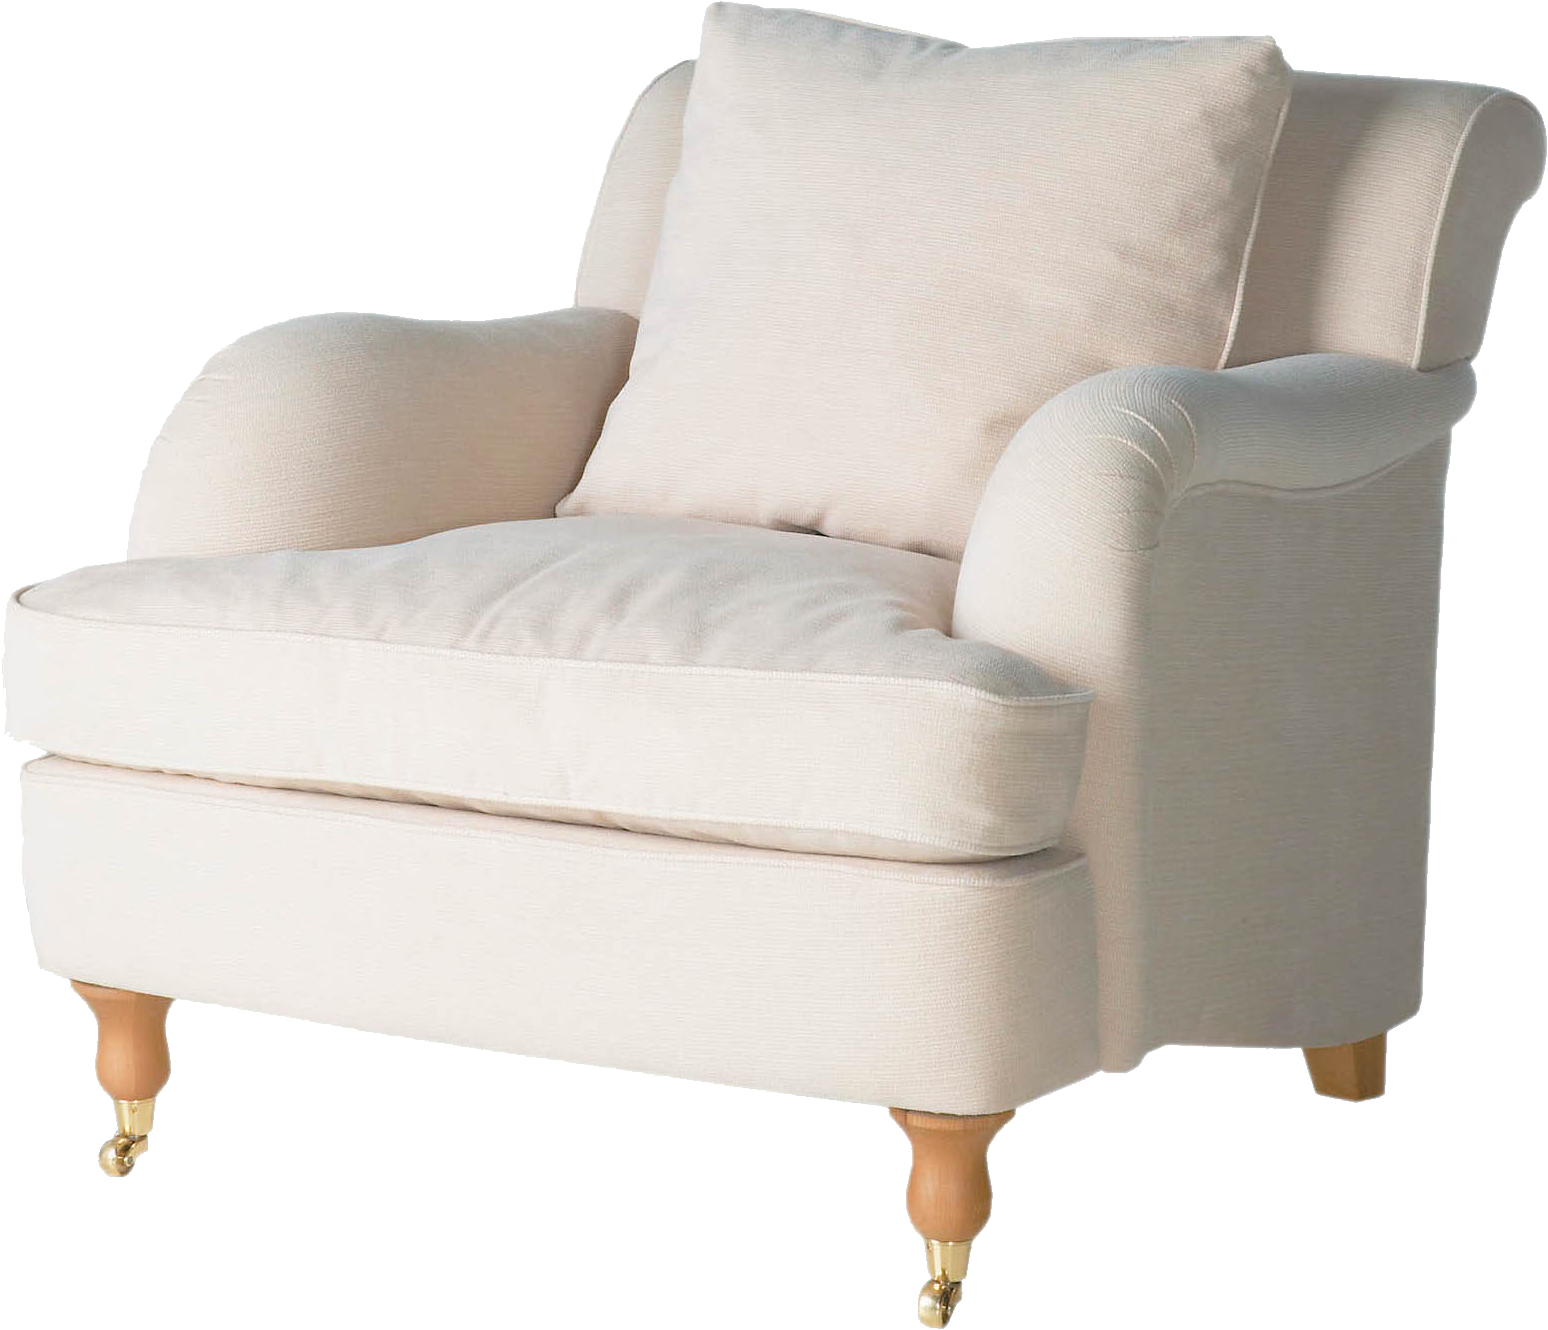 Armchair PNG Image   PurePNG | Free Transparent CC0 PNG Image Library